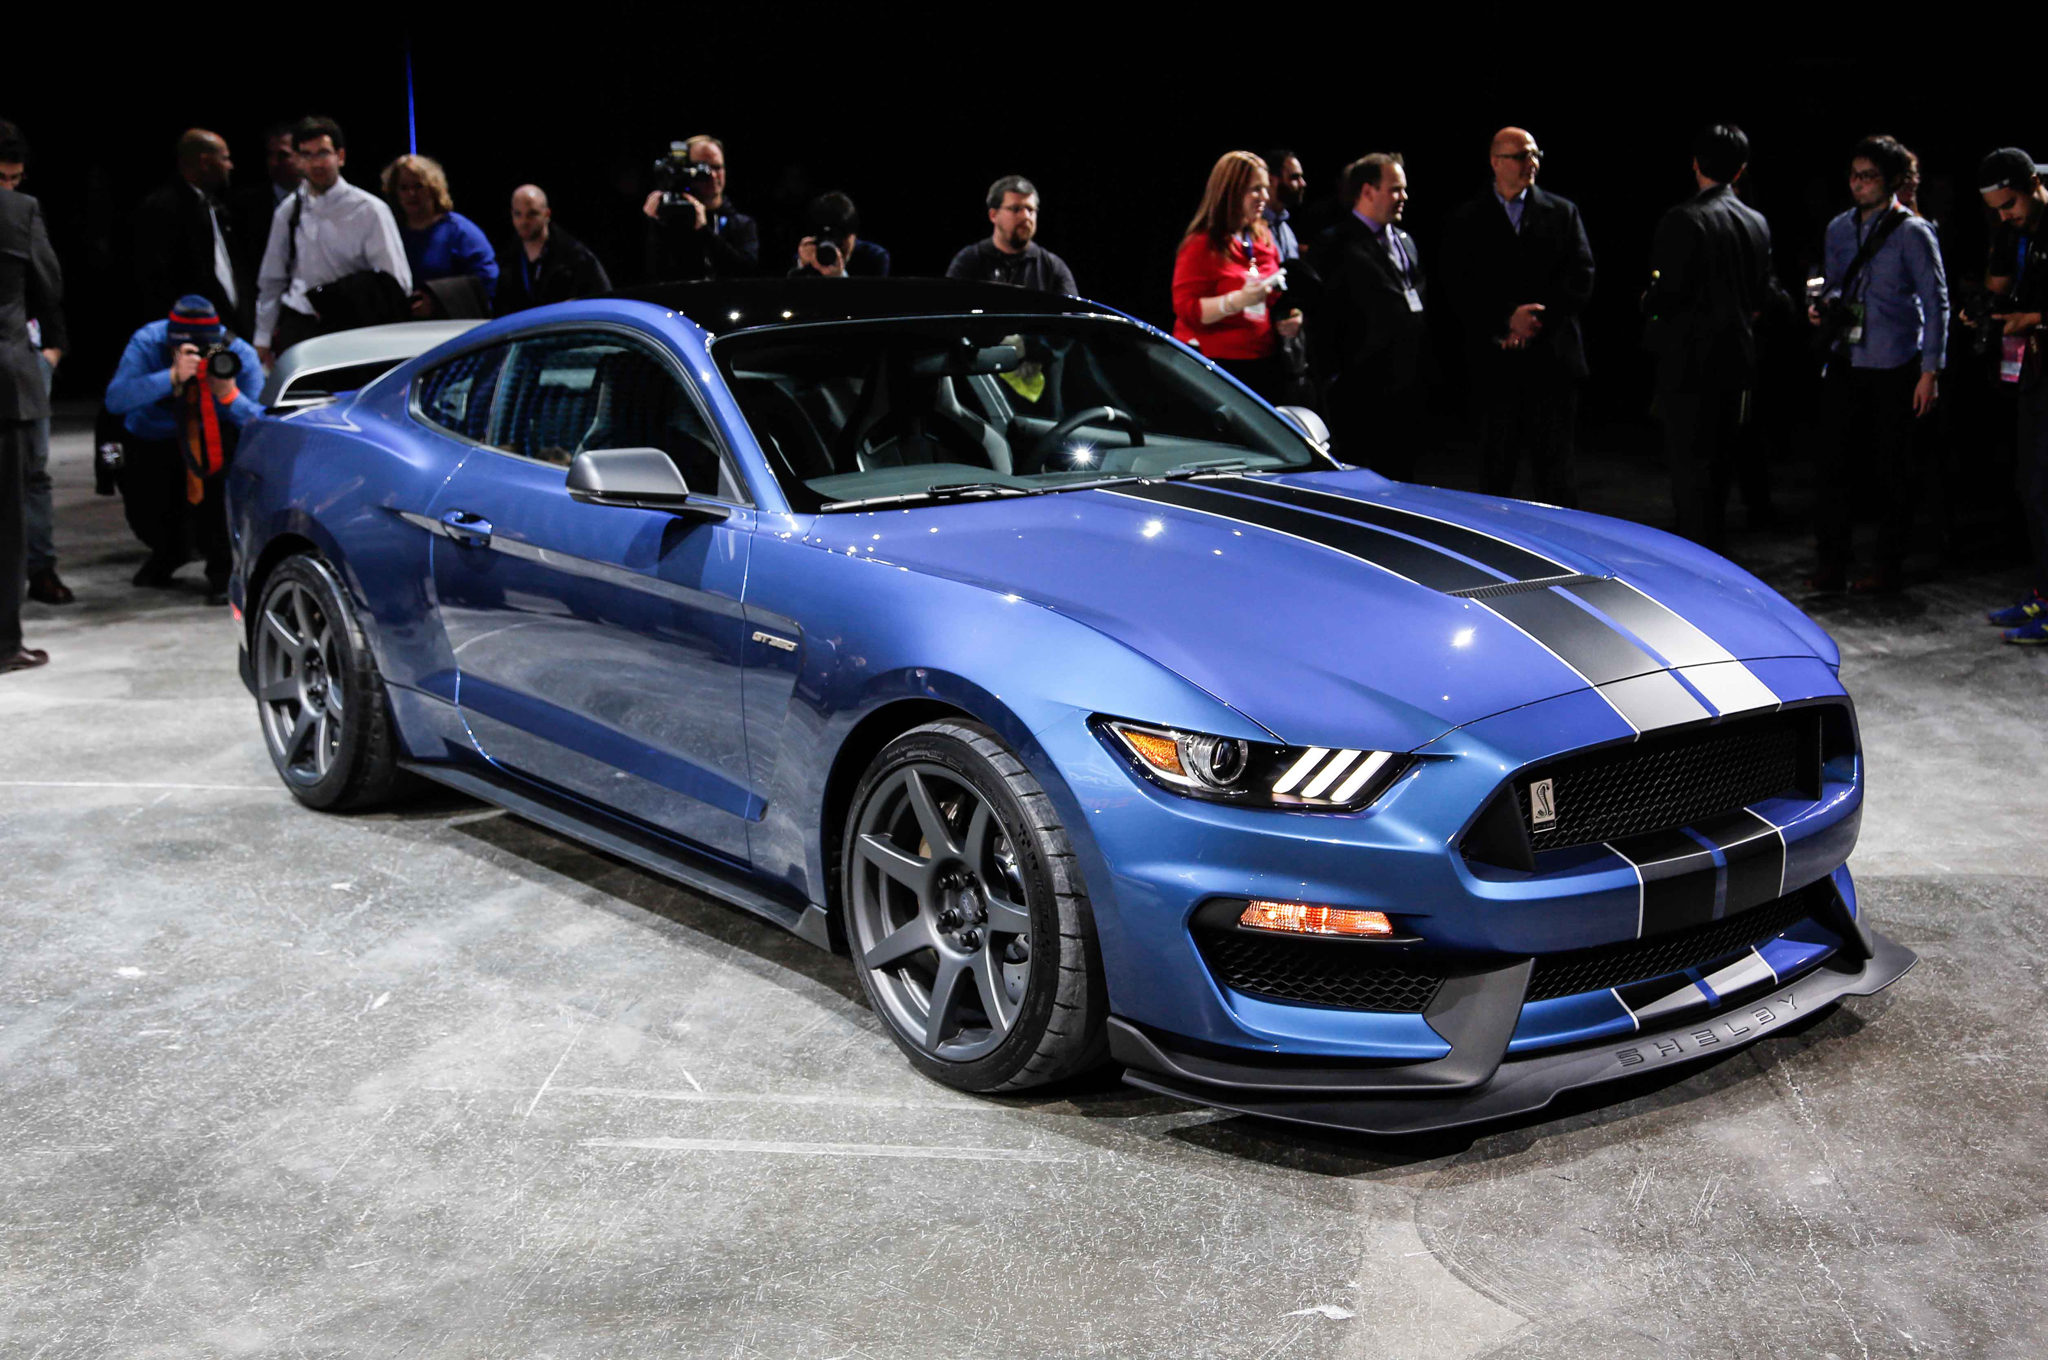 2016 Ford Shelby Gt350r Mustang (Photo 47 of 47)